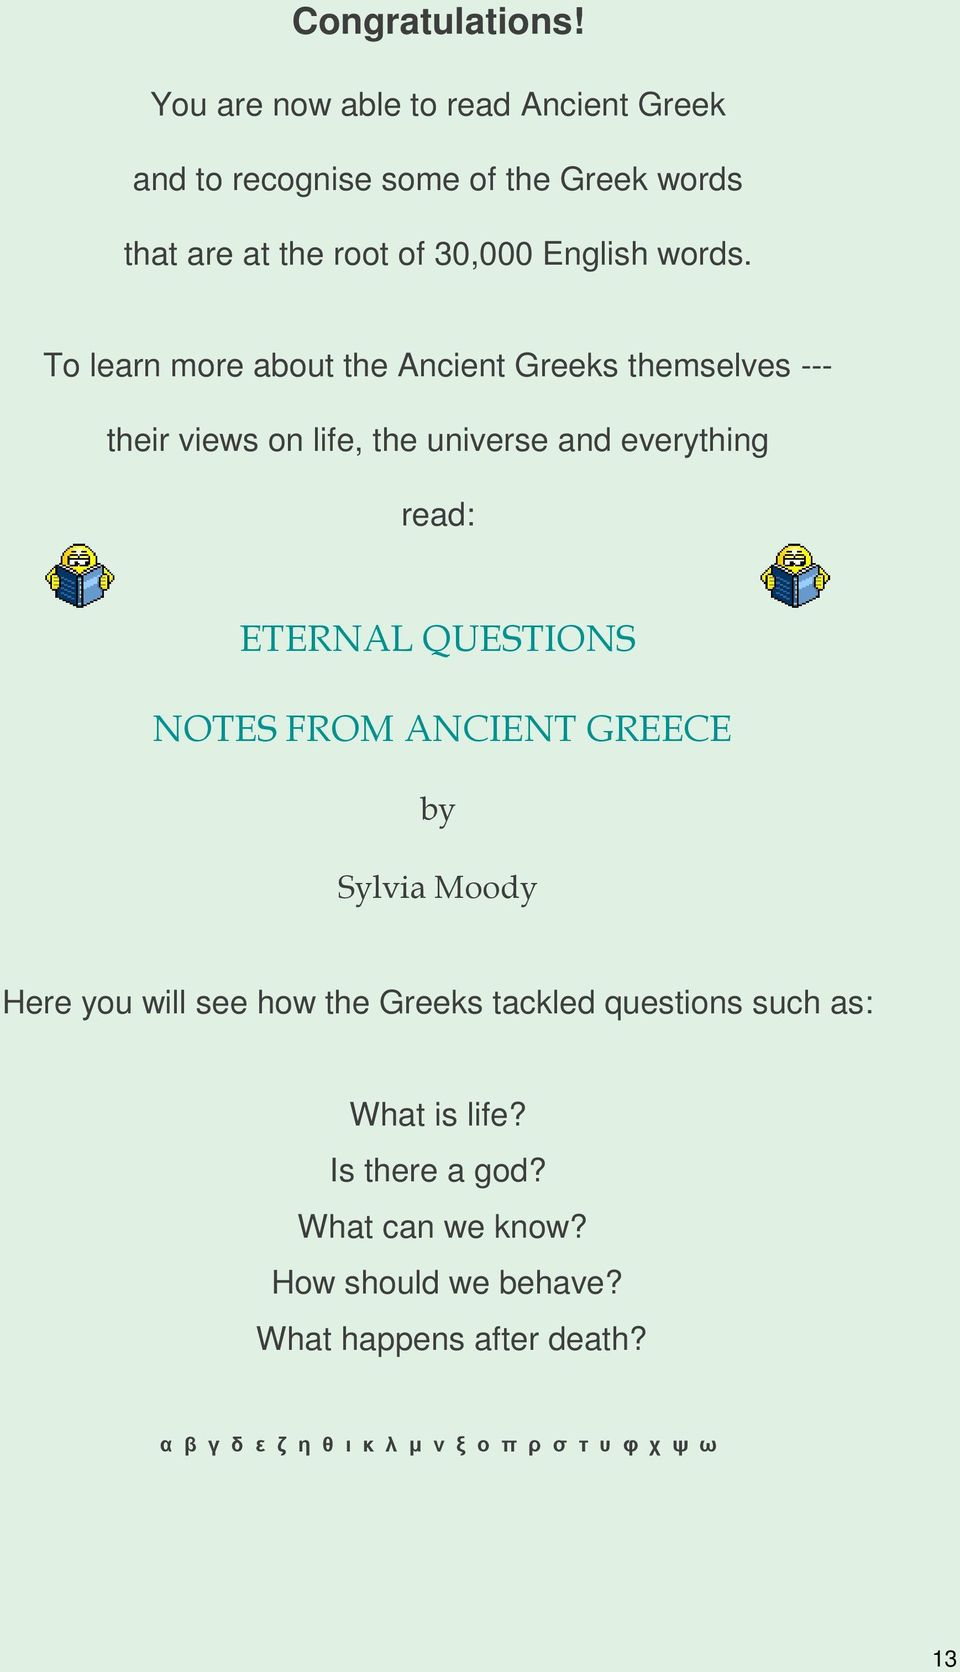 To learn more about the Ancient Greeks themselves --- their views on life, the universe and everything read: ETERNAL QUESTIONS